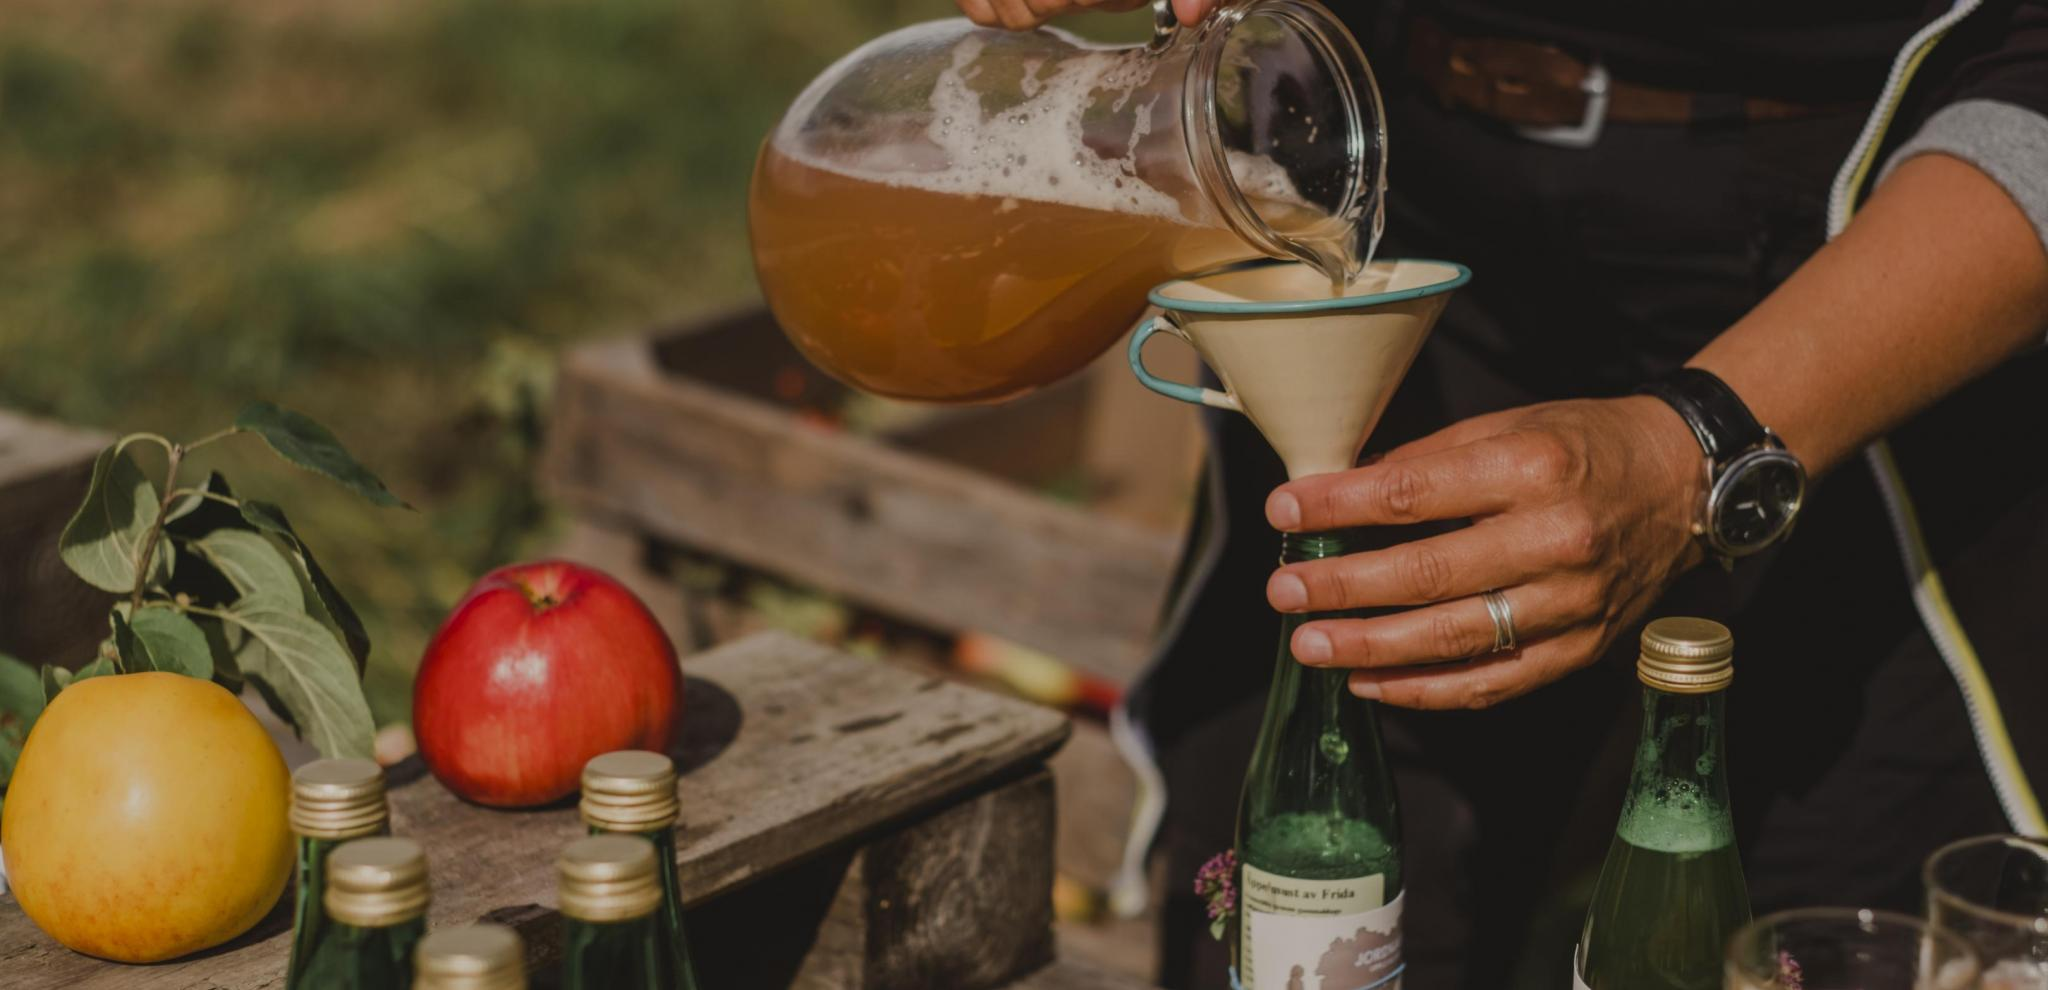 A person pouring apple juice through a funnel to a glass bottle